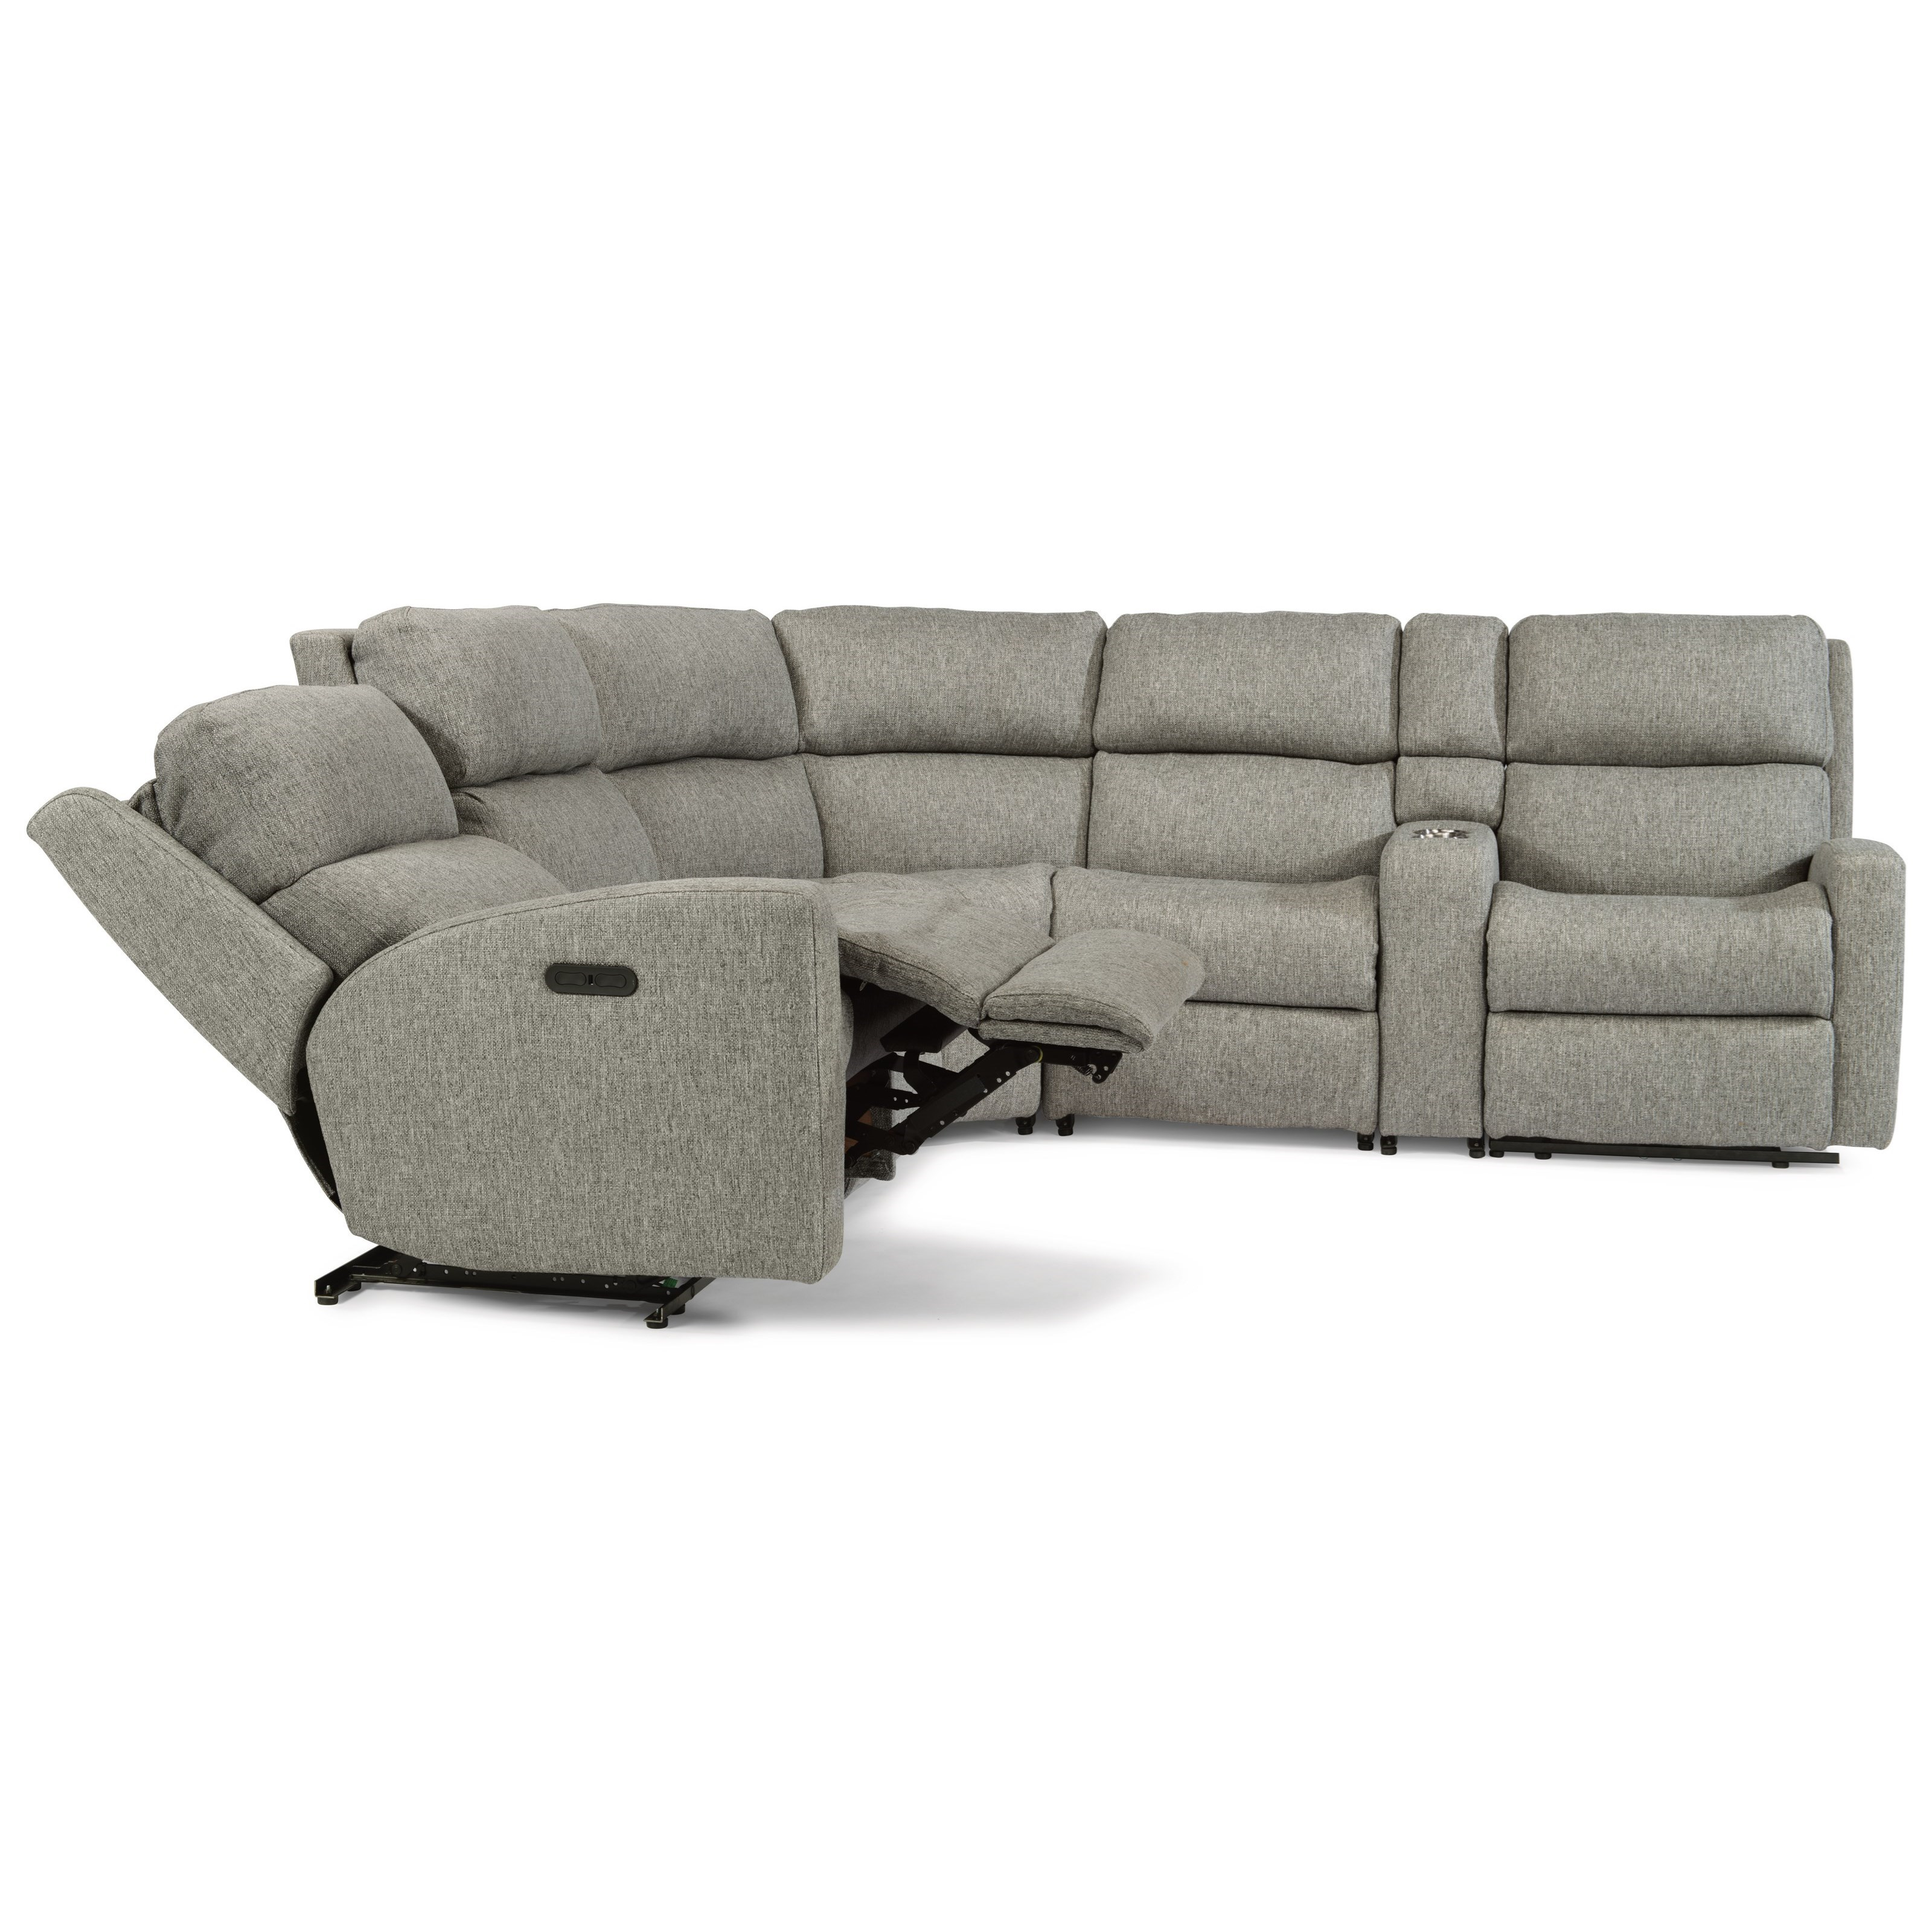 Catalina 6 Piece Manual Reclining Sectional by Flexsteel at Mueller Furniture